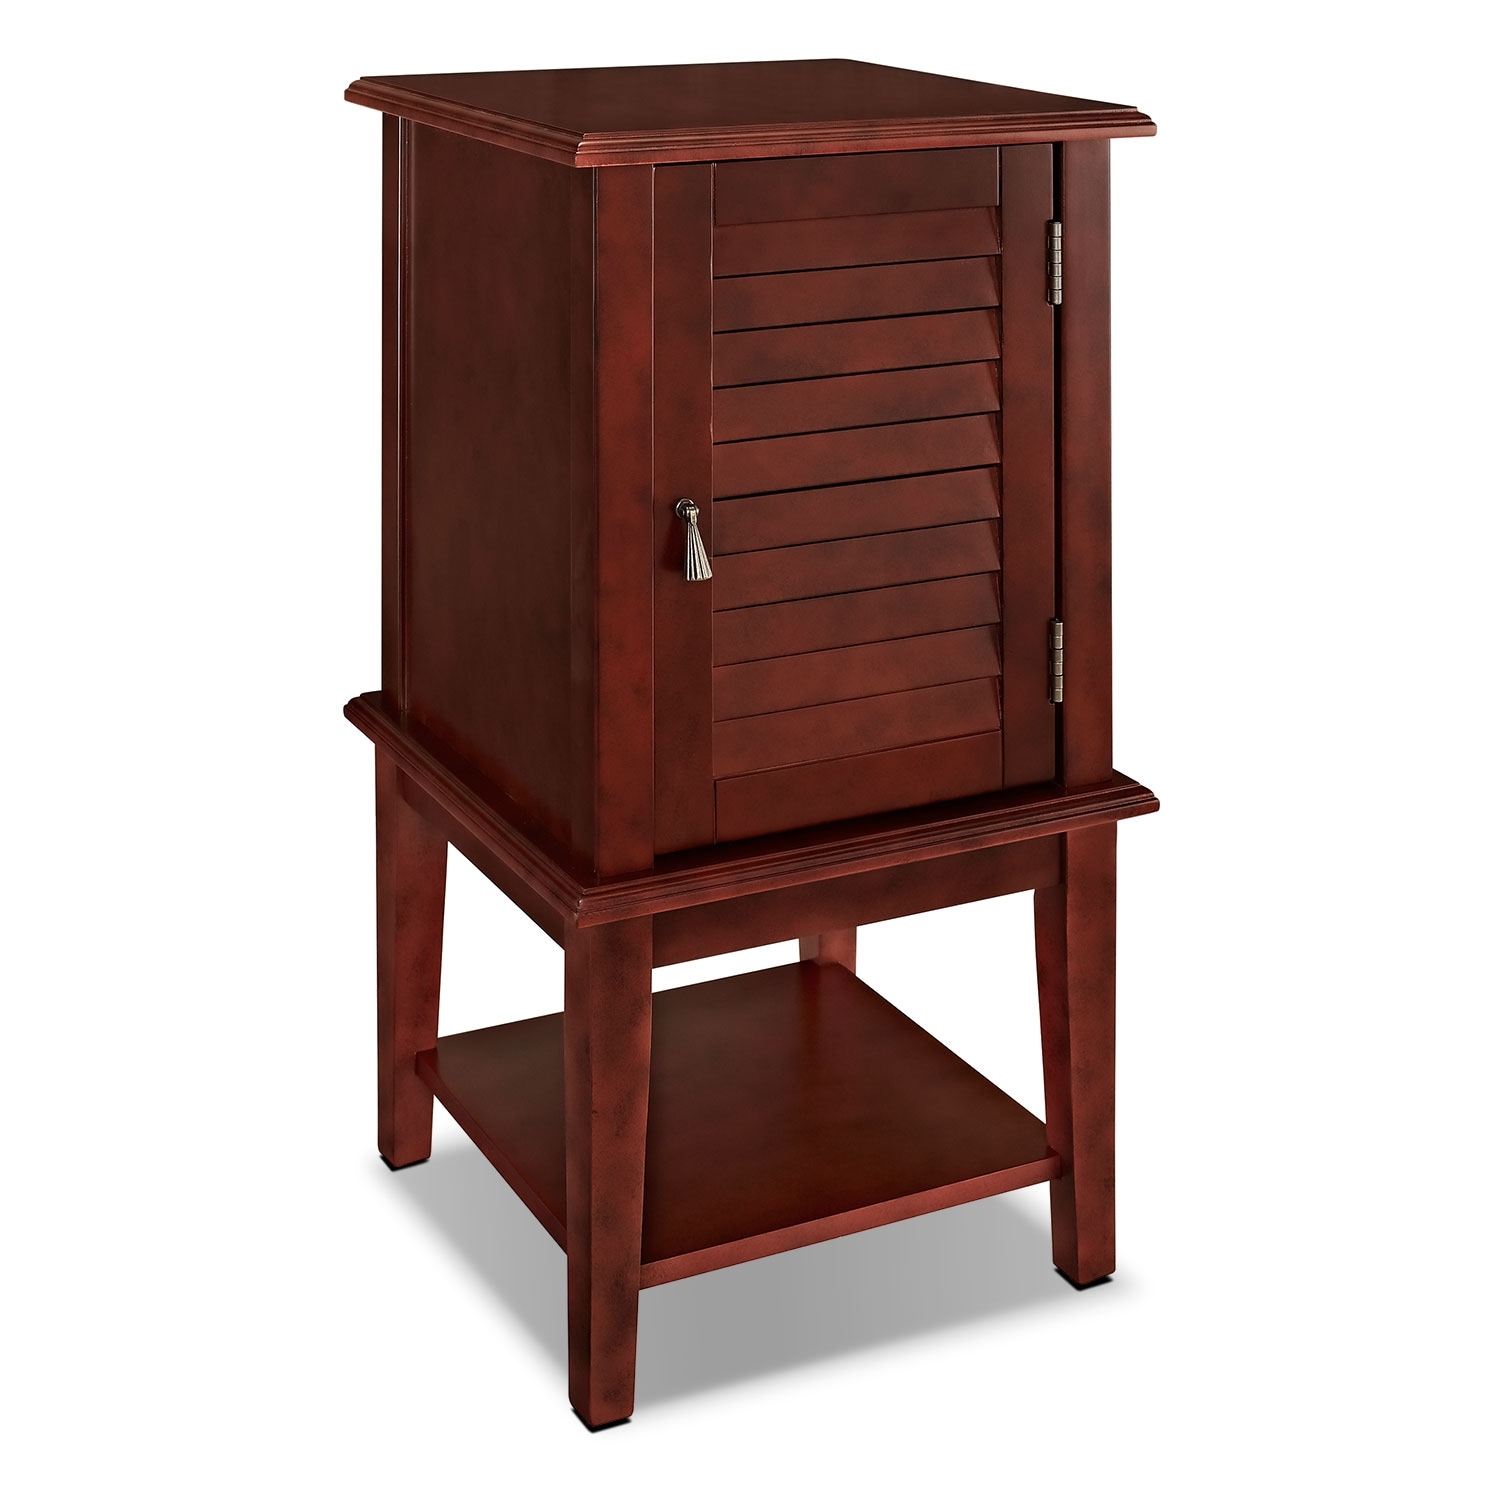 Tulsa Side Table - Red